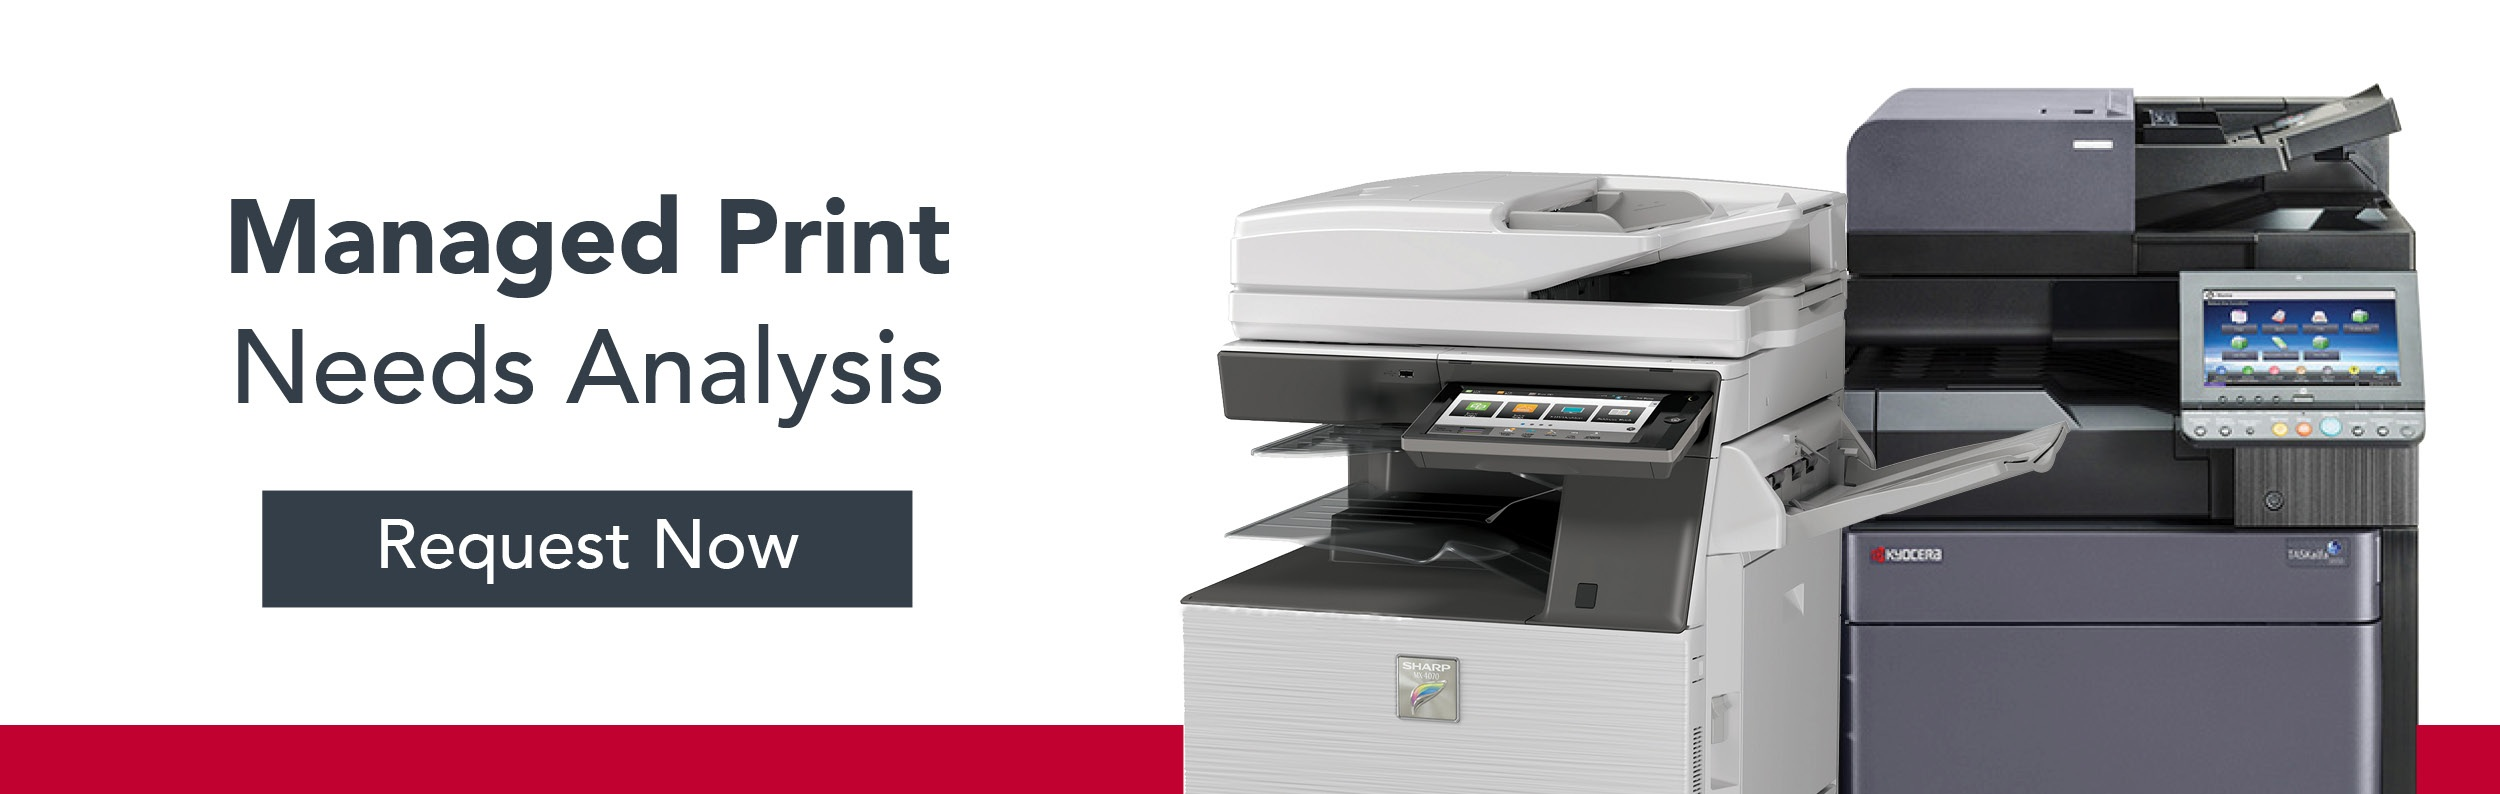 Managed Print Needs Analysis CTA - Request Now Button